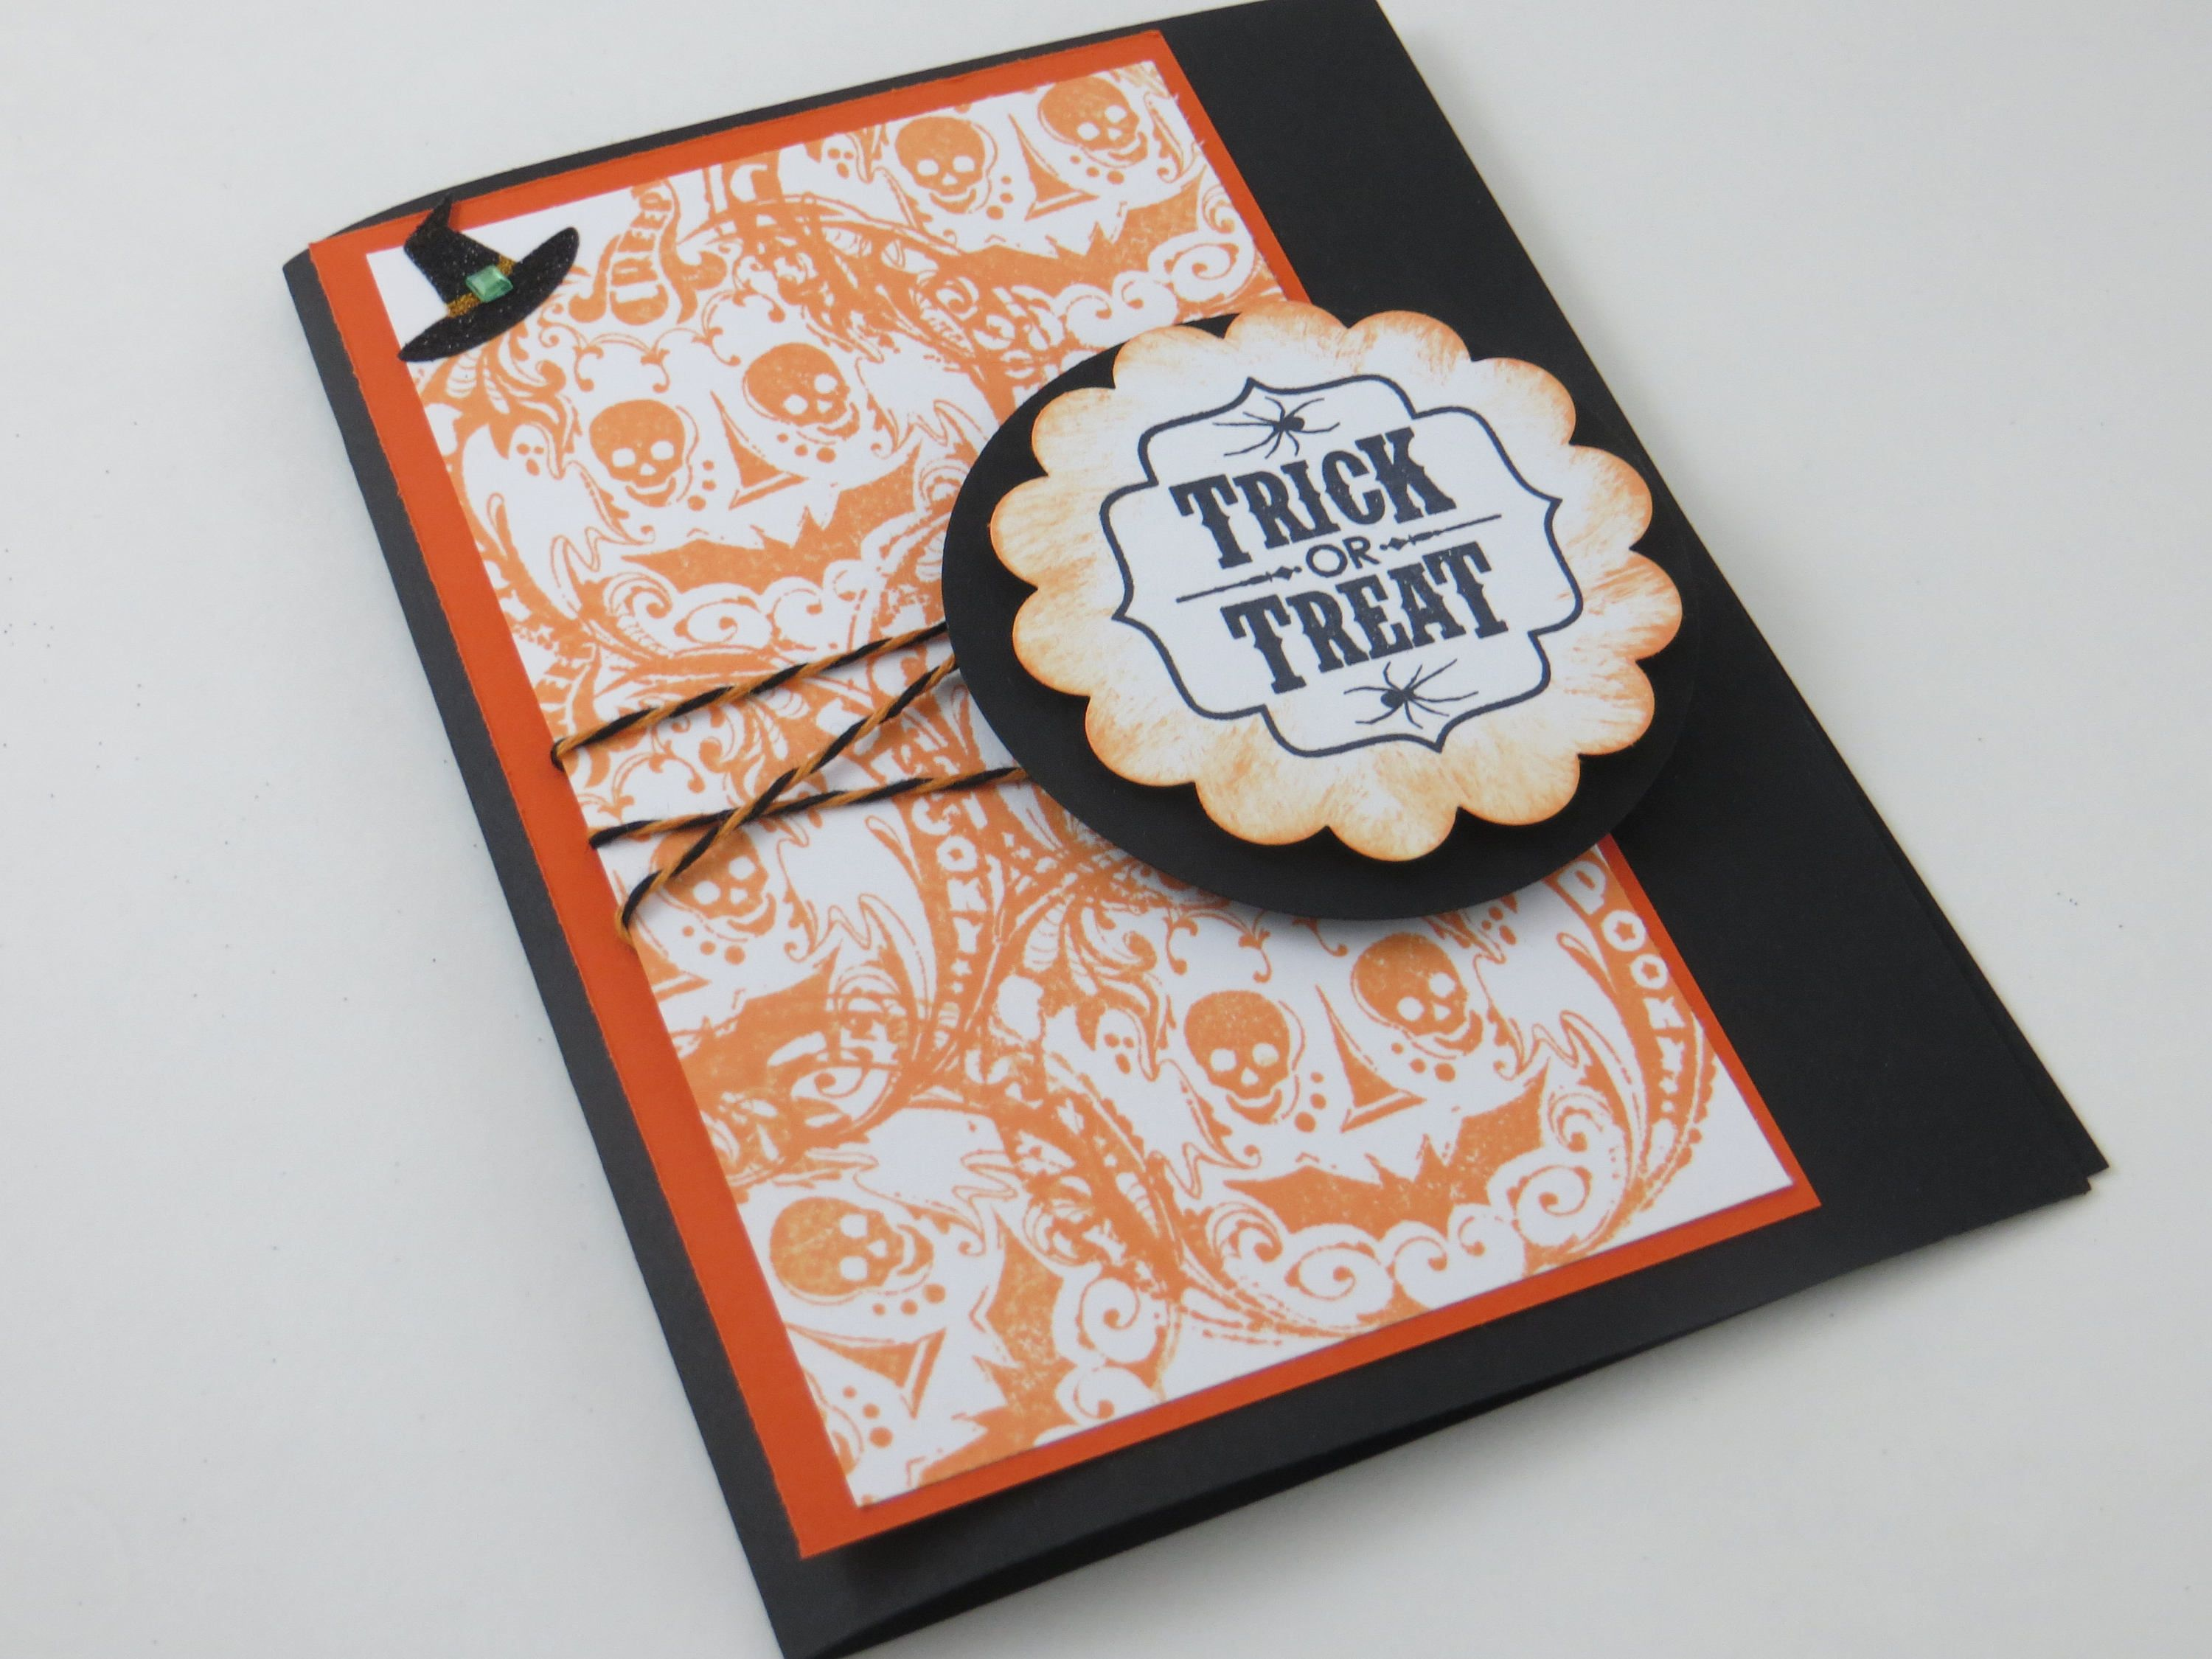 Halloween card trick or treat card handmade greeting card halloween card trick or treat card handmade greeting card m4hsunfo